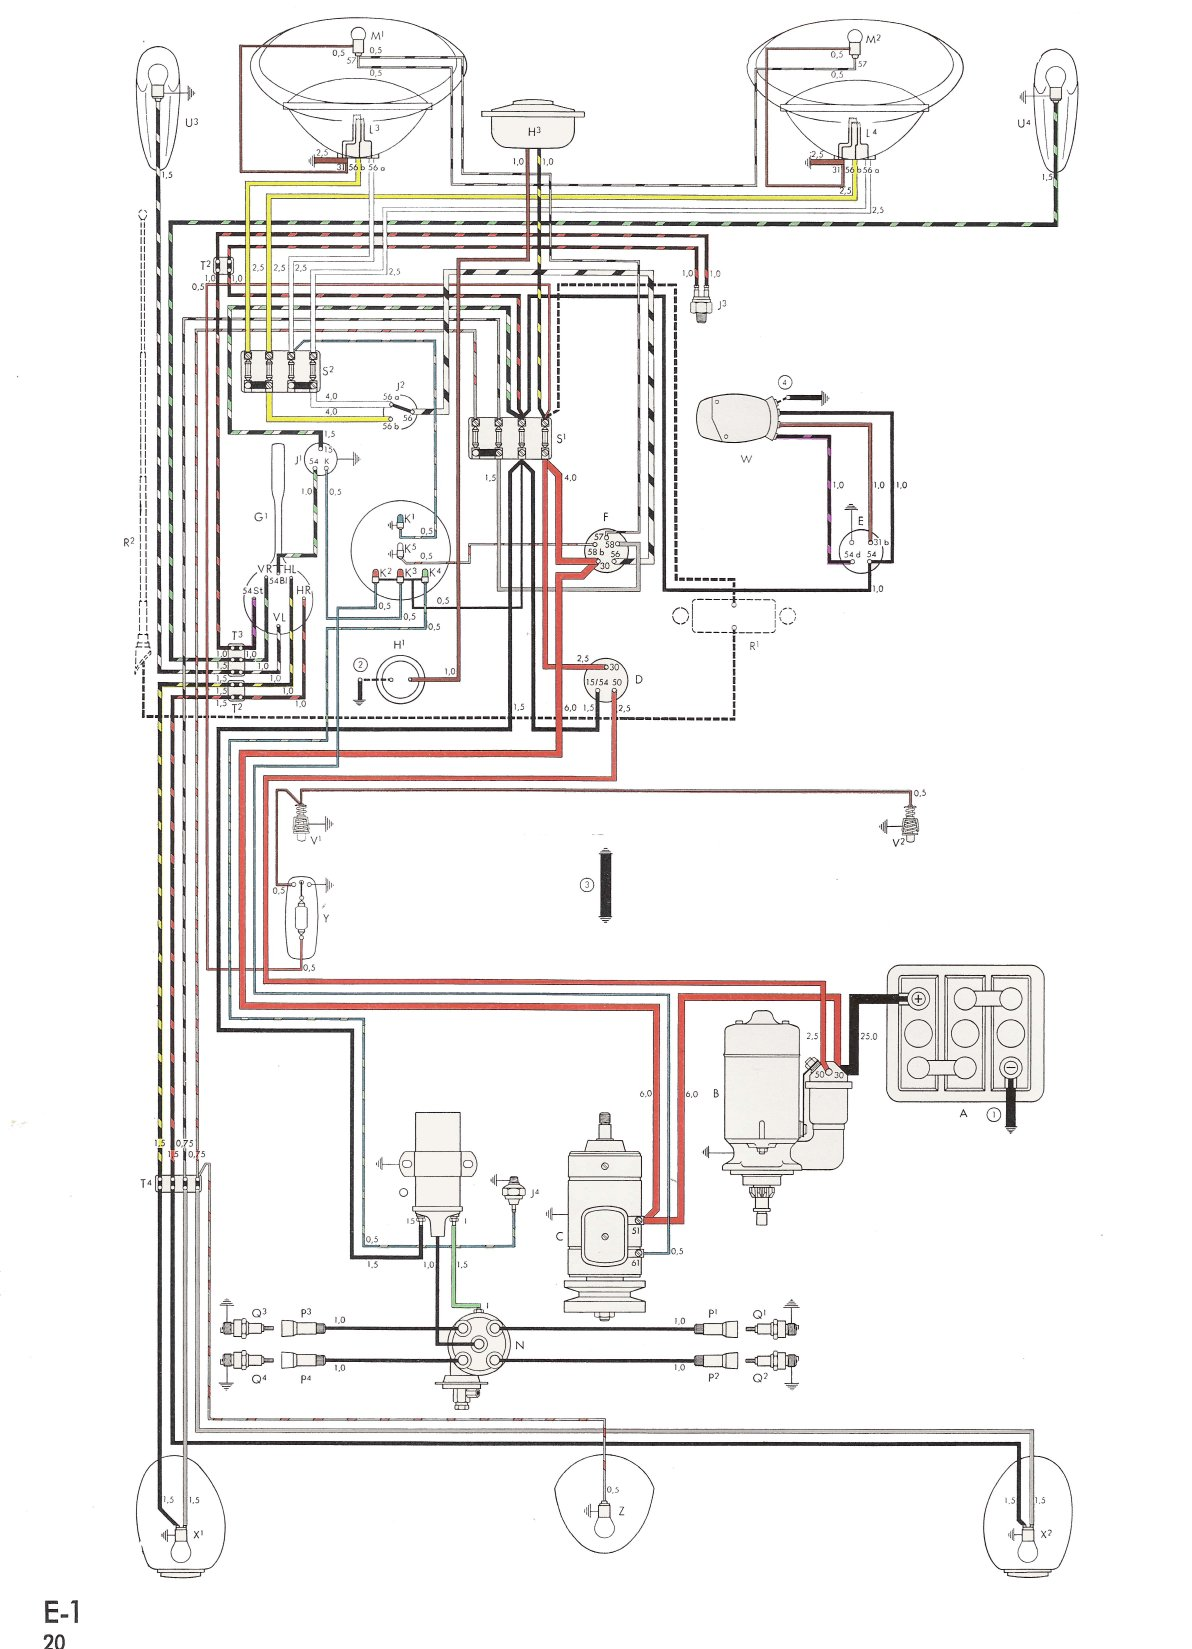 bug60 thesamba com type 1 wiring diagrams 76 vw beetle wiring diagram at edmiracle.co